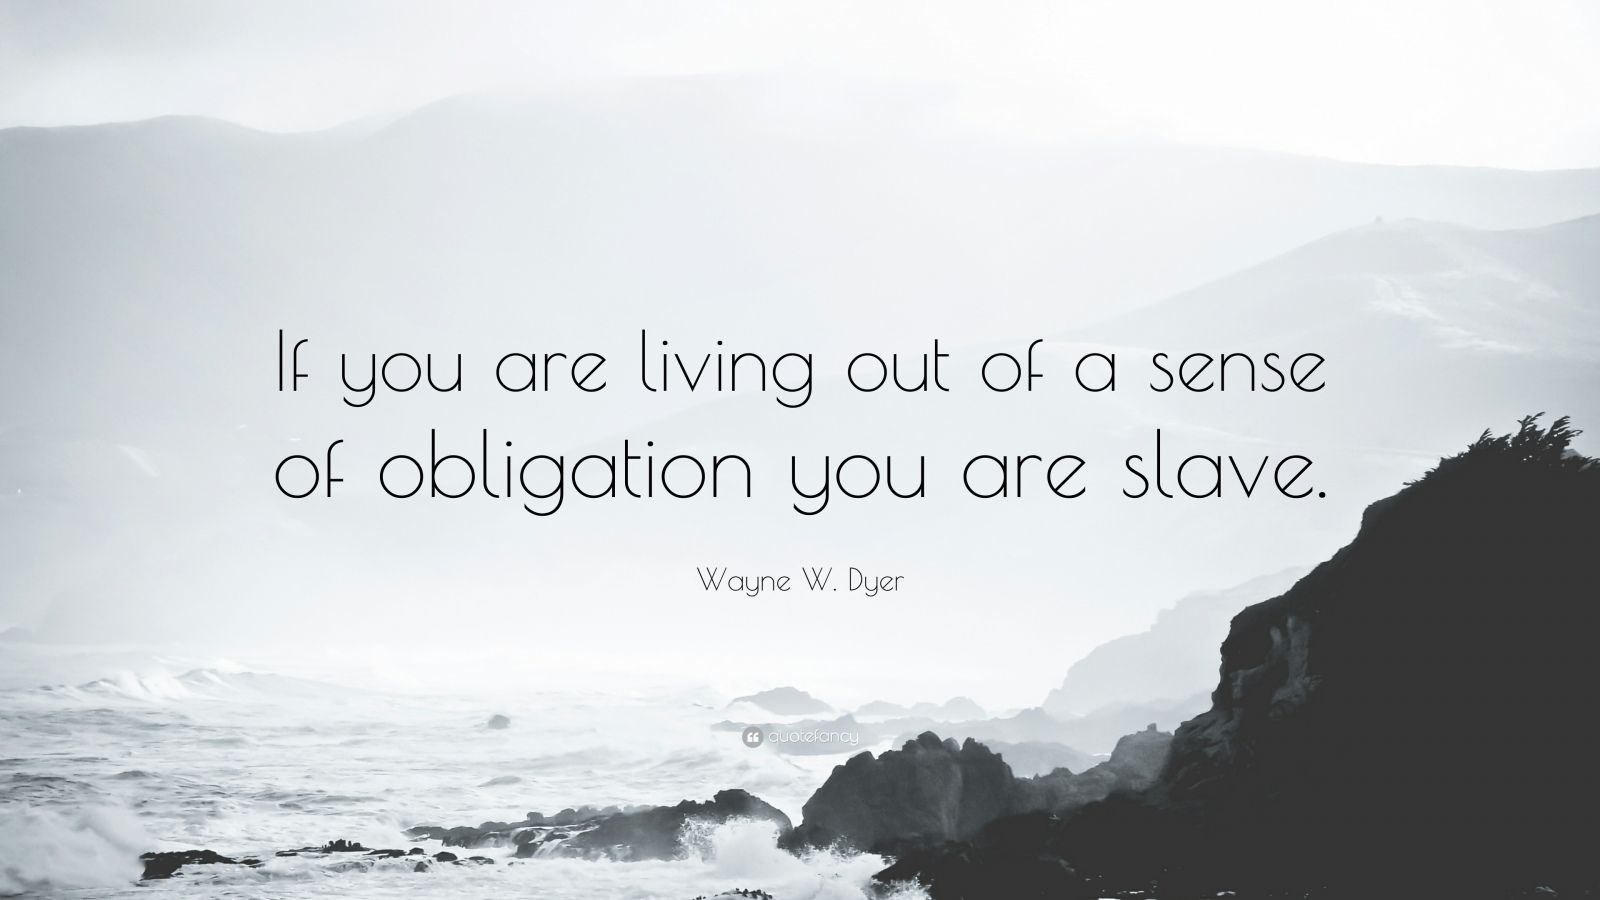 """Wayne W. Dyer Quote: """"If you are living out of a sense of obligation you are slave."""""""